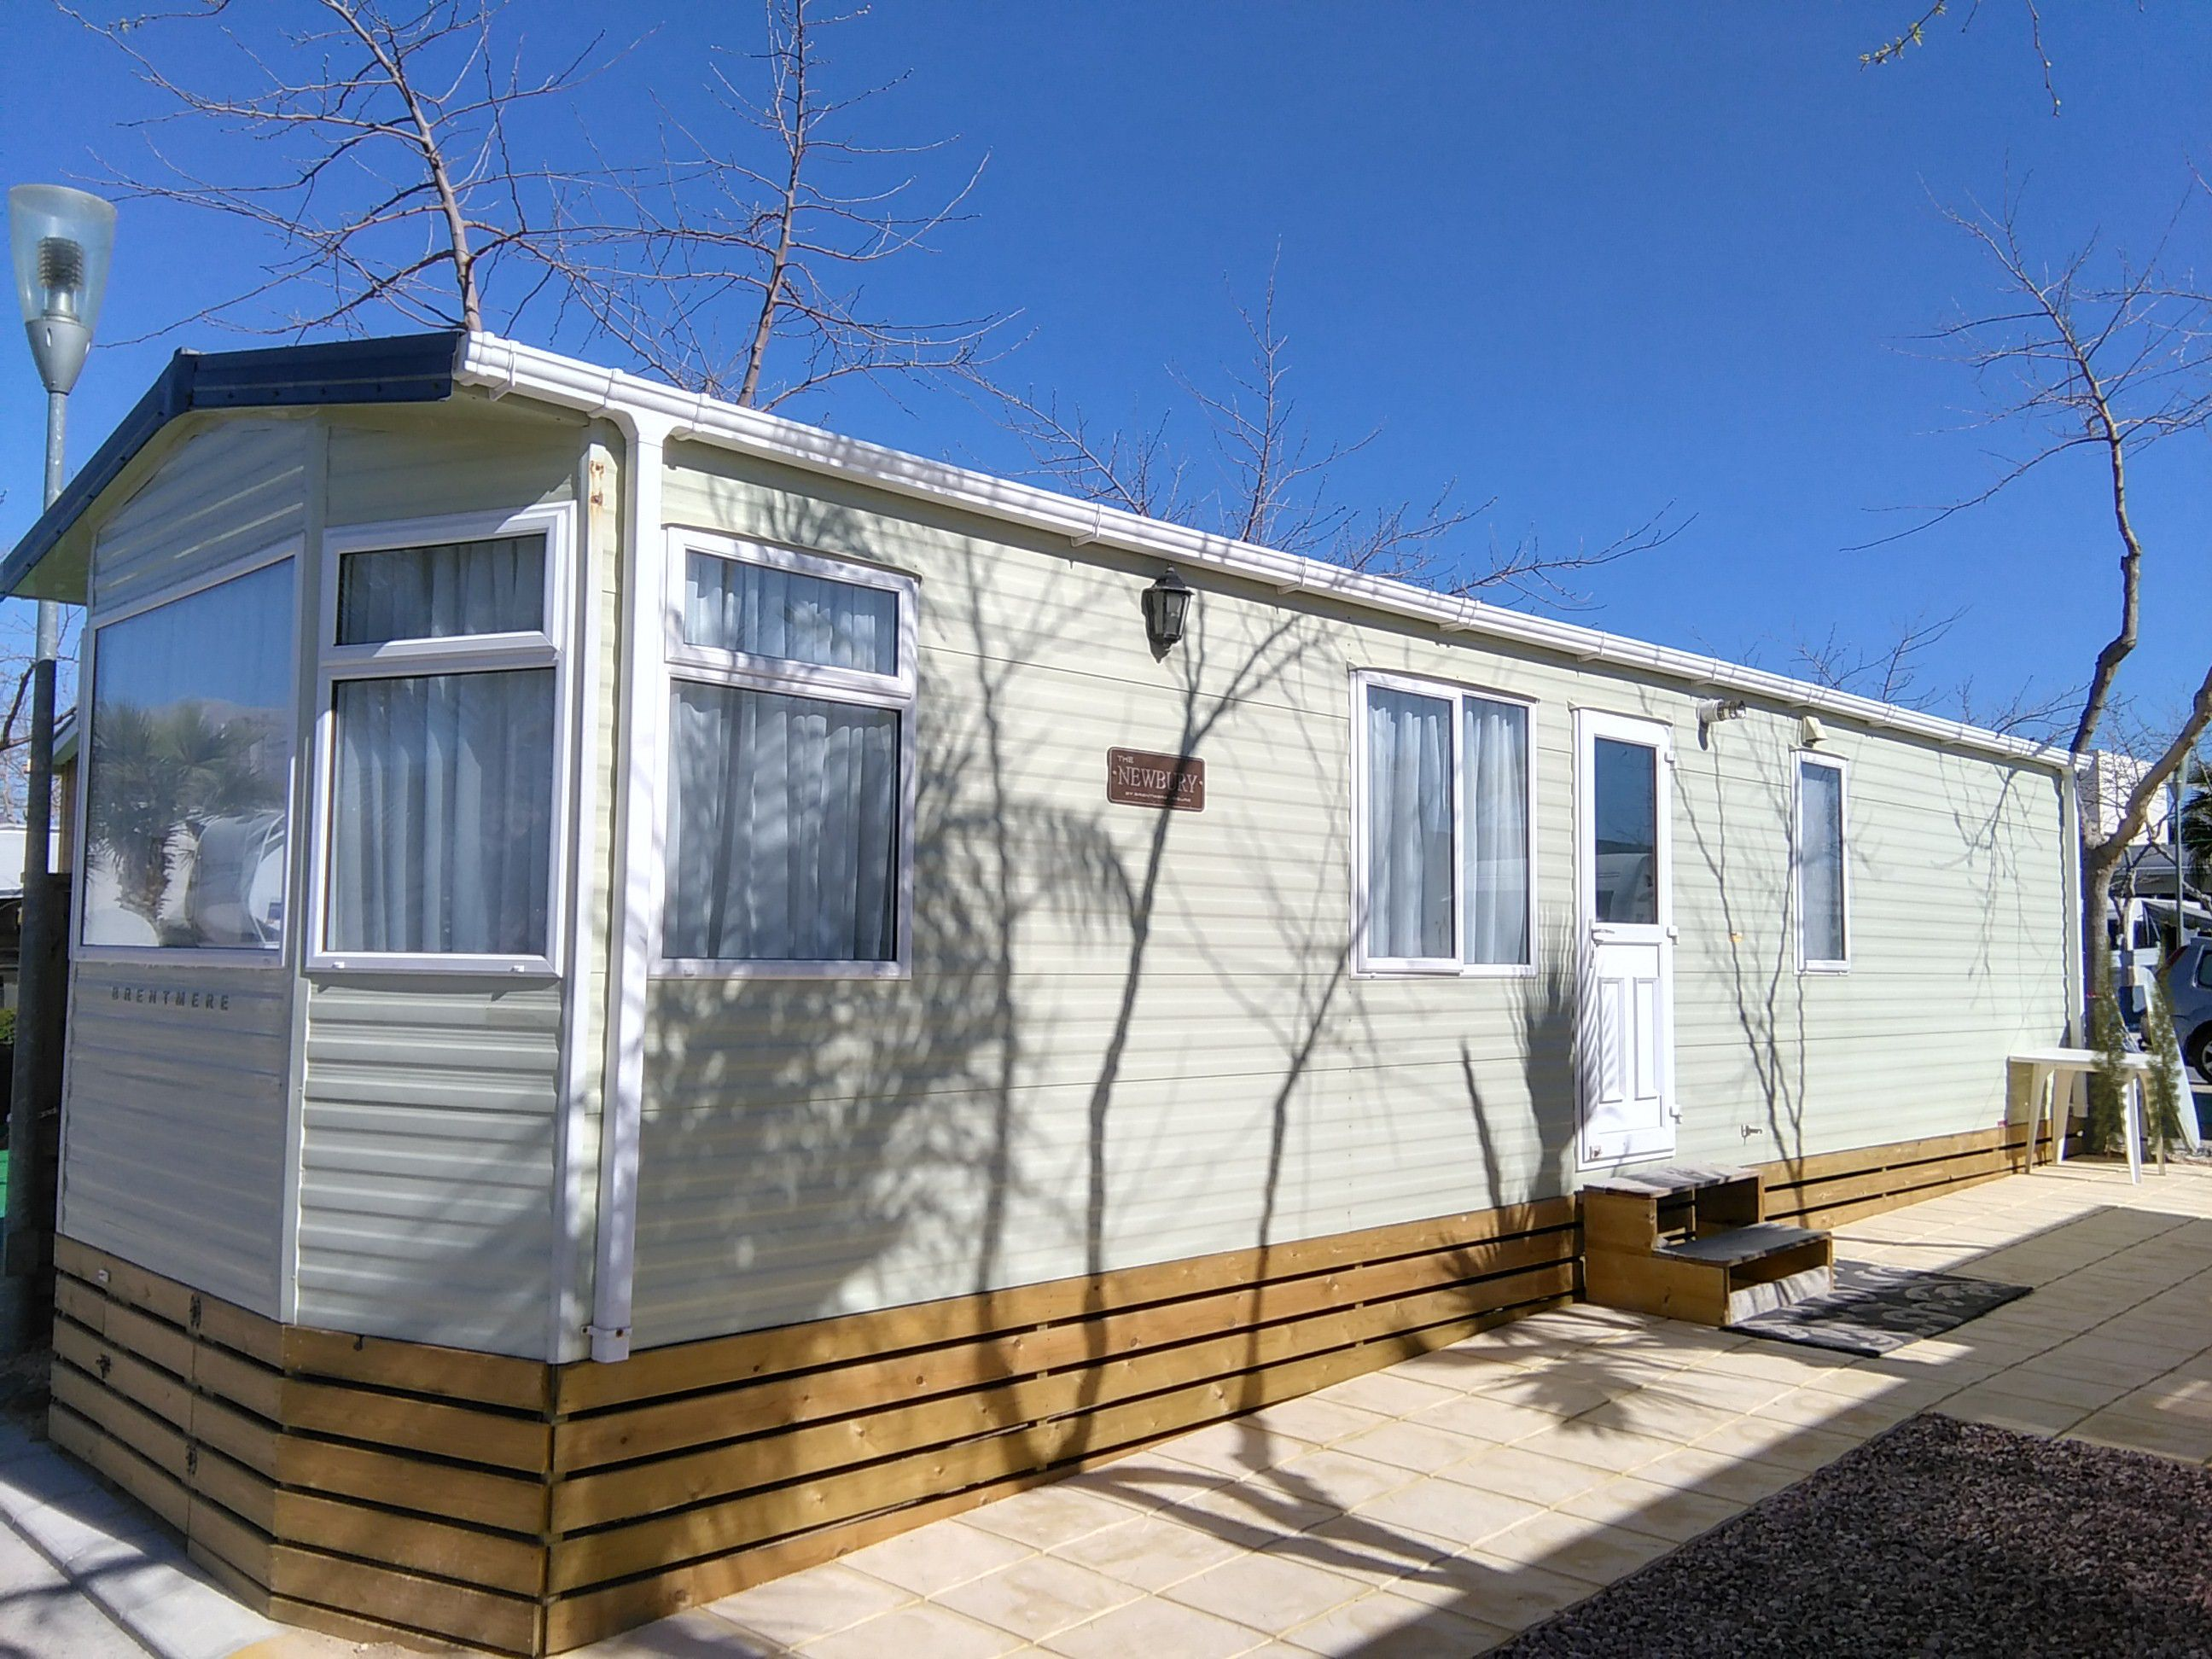 83852128d2f9b4 Brentmere Newbury Static Caravan For Sale On Camping Almafra Mobile Home  Park In Benidorm Costa Blanca